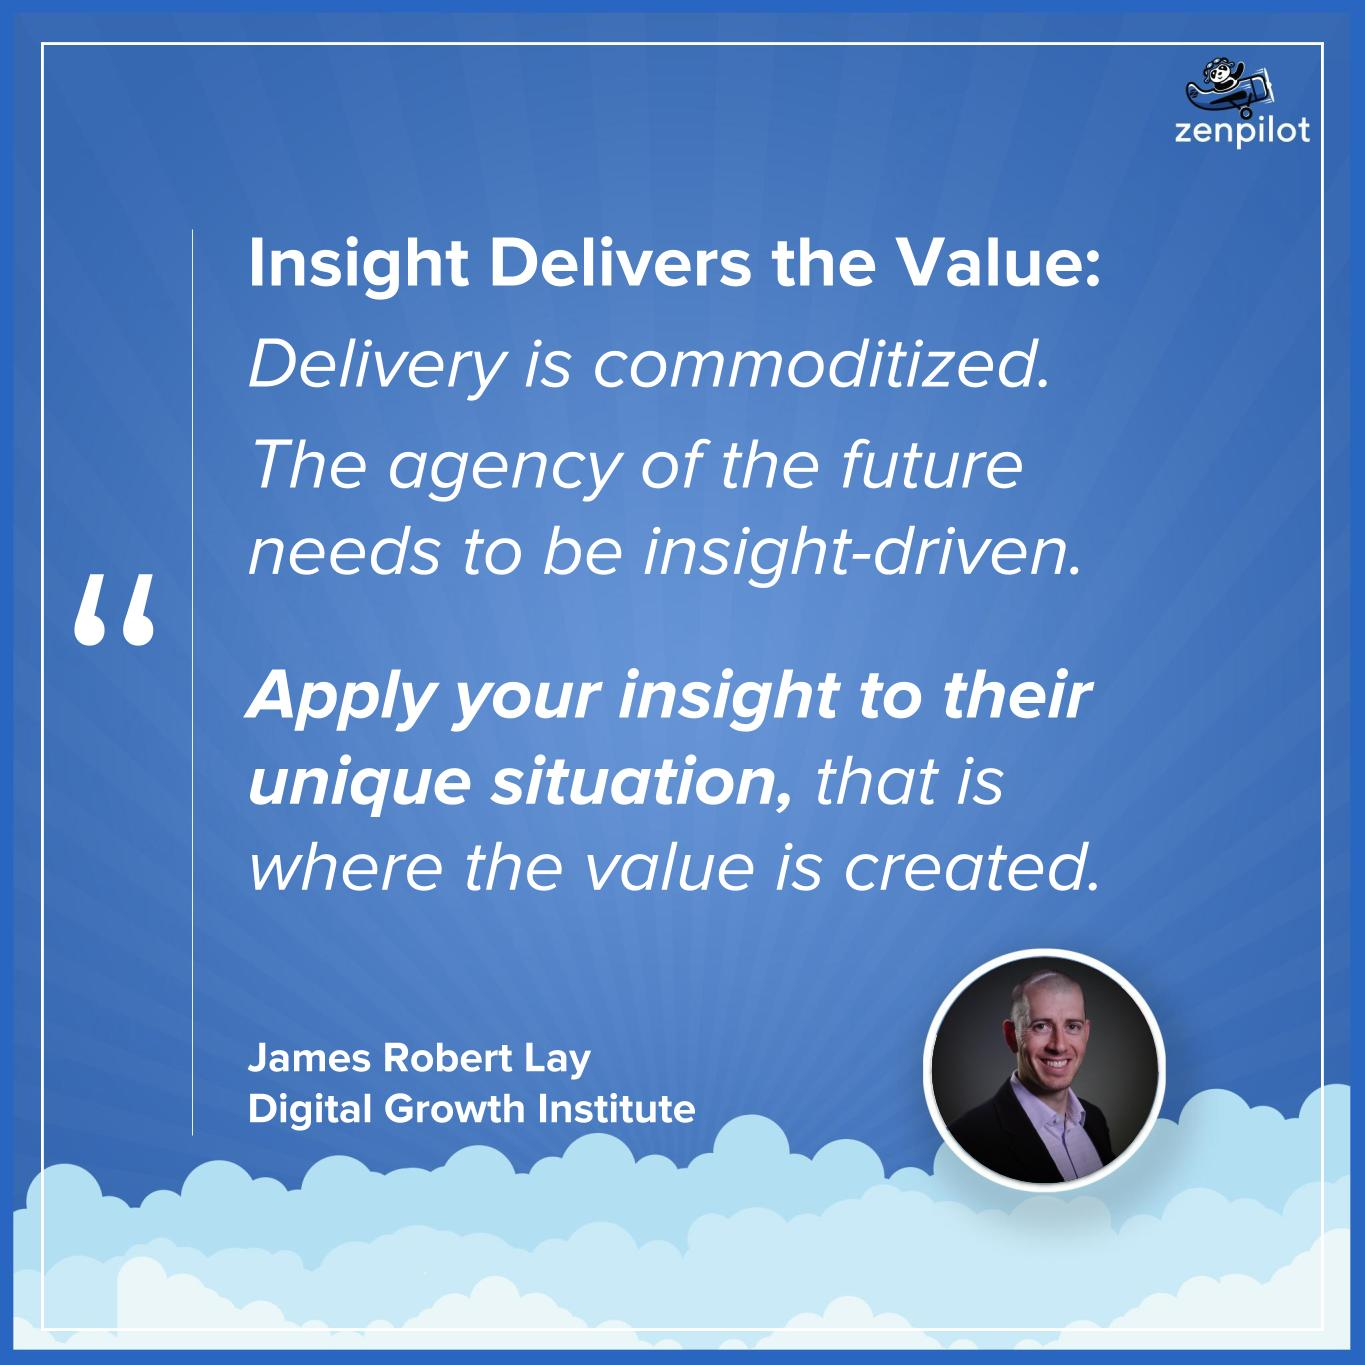 agency-of-the-future-james-robert-lay-agency-journey